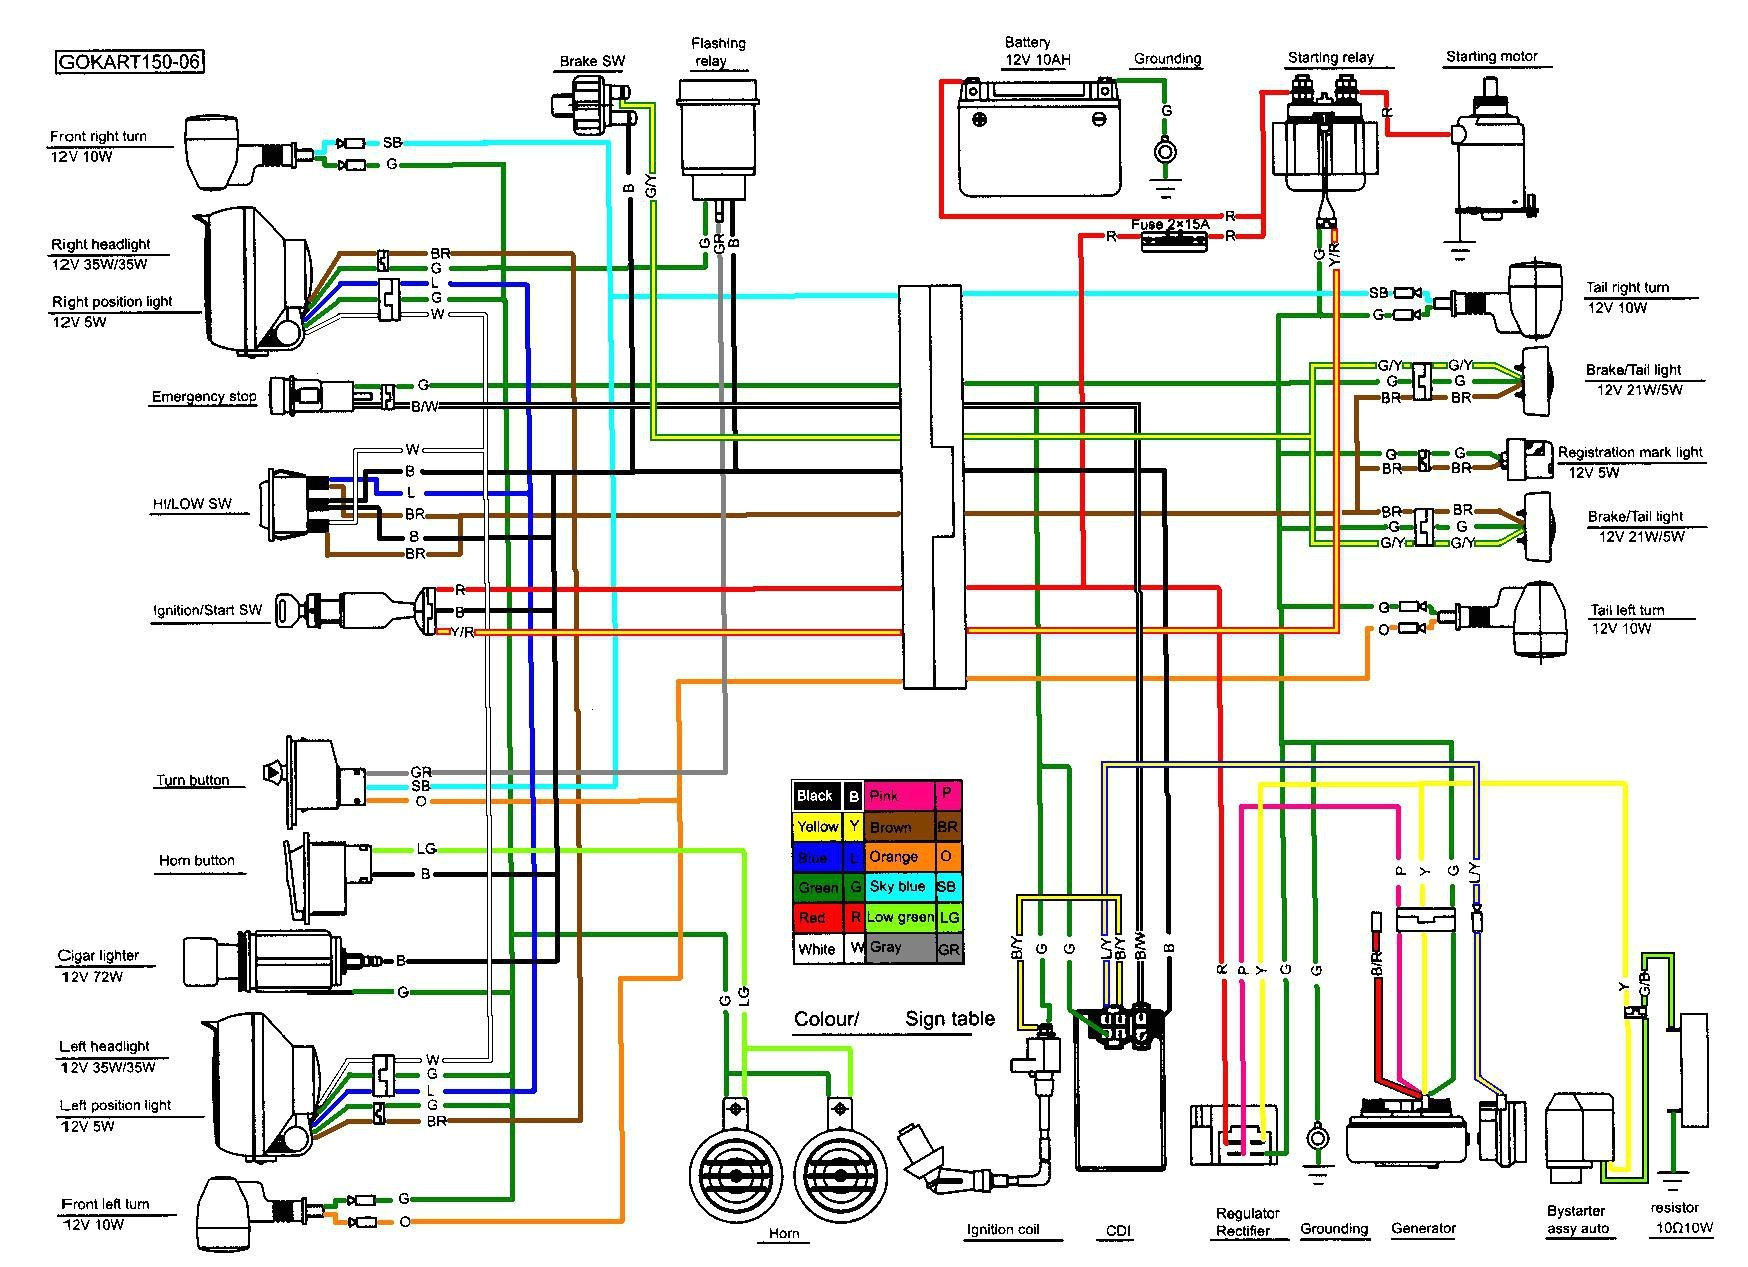 tao scooter wiring diagram wiring diagram show diagram also tao tao scooter carburetor diagram as well